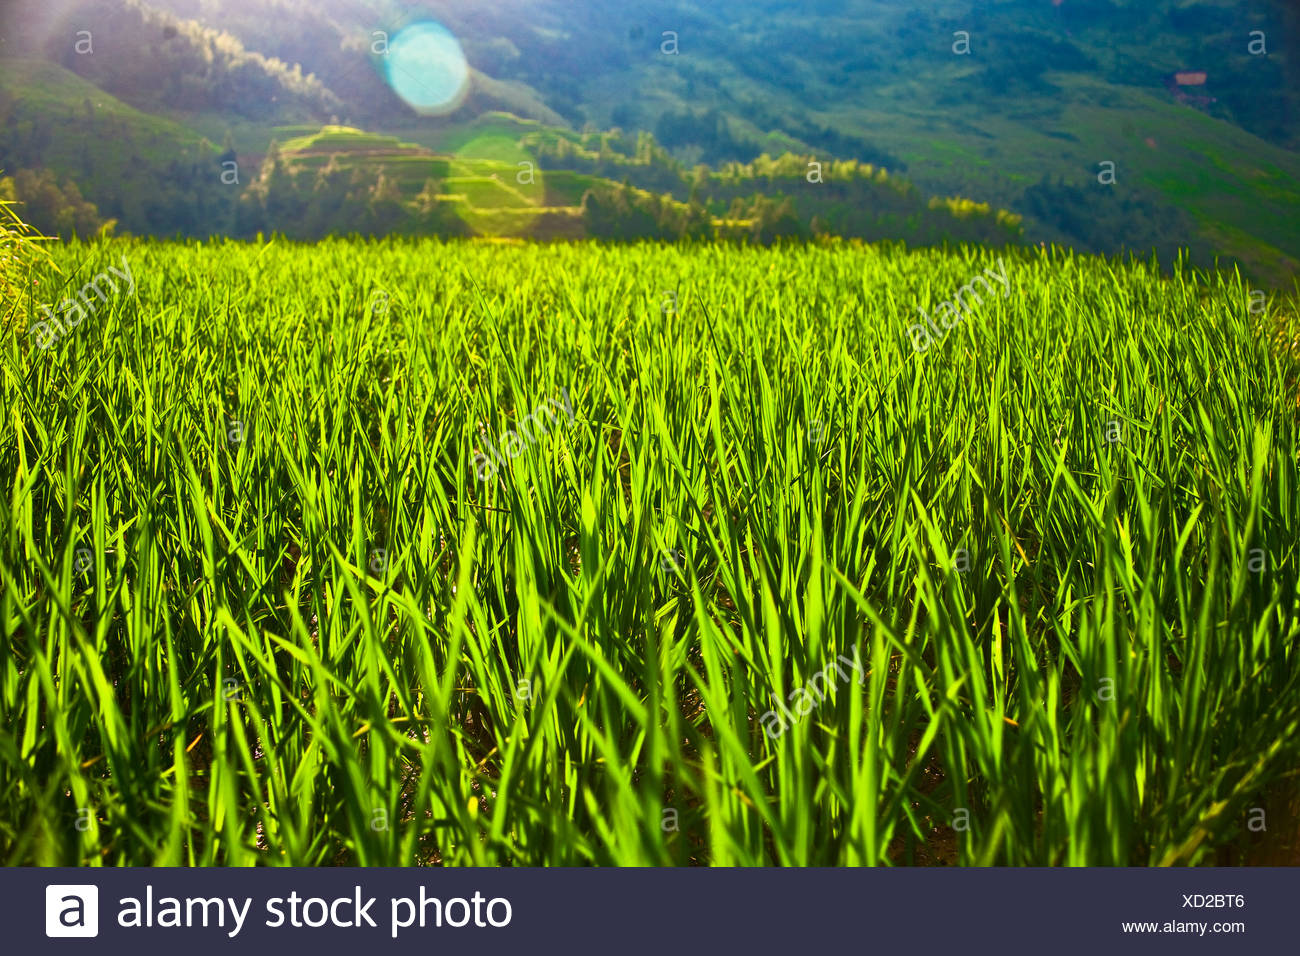 Rice paddy in a field, Jinkeng Terraced Field, Guangxi Province, China - Stock Image